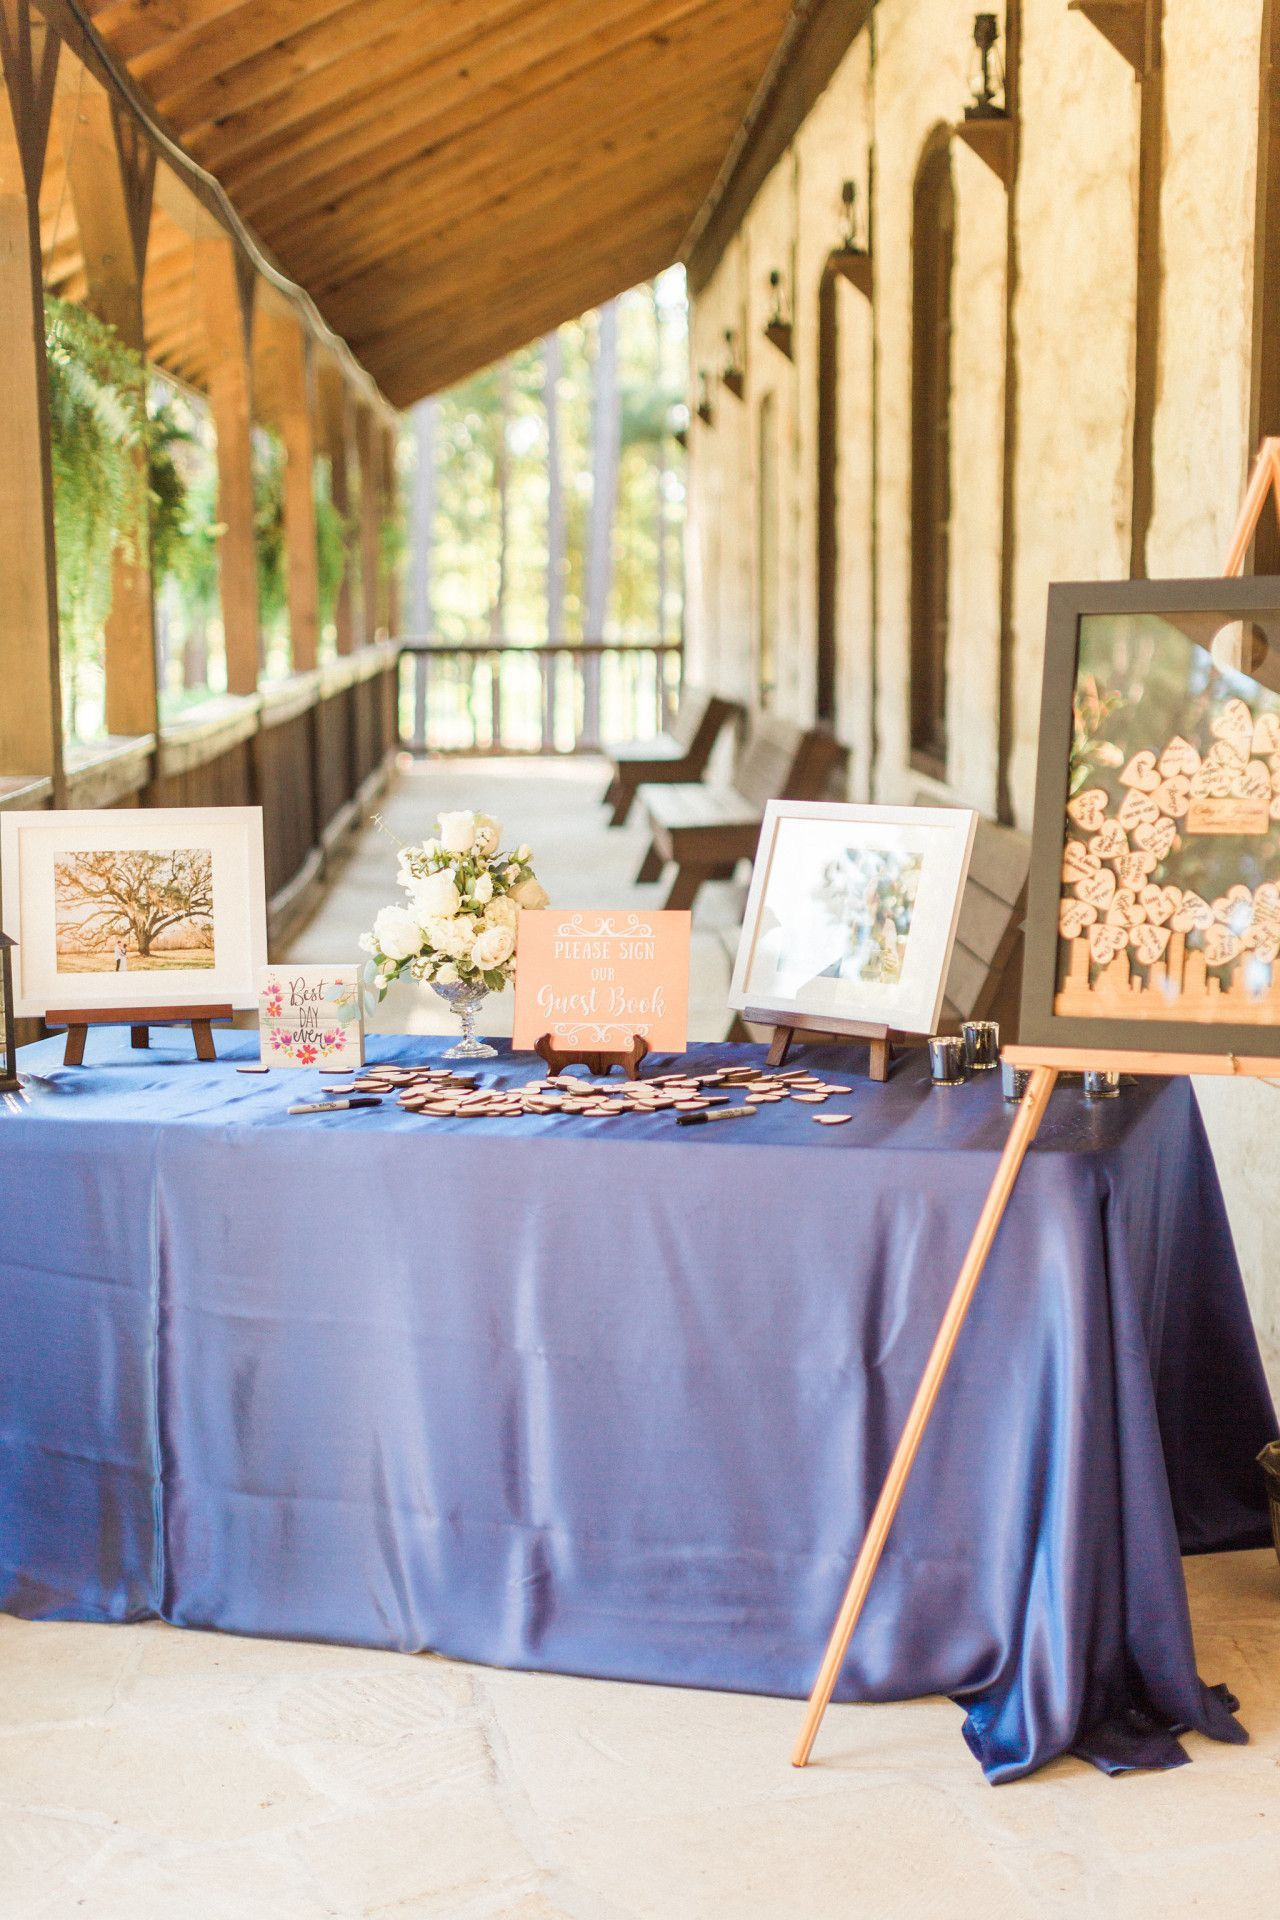 Ideas for wedding decorations outside  wedding guest book welcome table  modern rustic wedding decorations